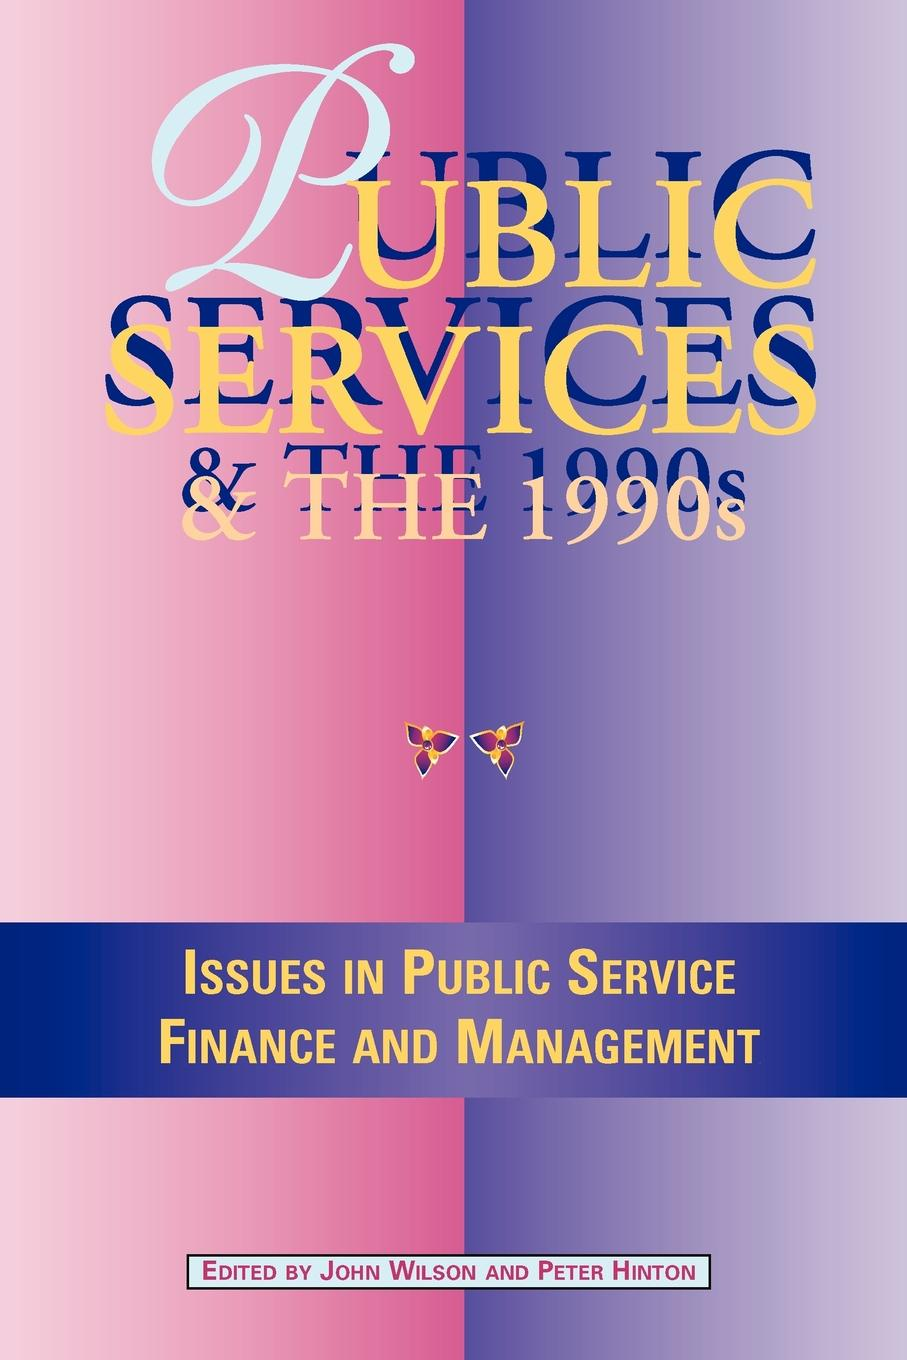 Public Services in the 1990s. Issues in Public Service Finance and Management julian le grand the other invisible hand delivering public services through choice and competition